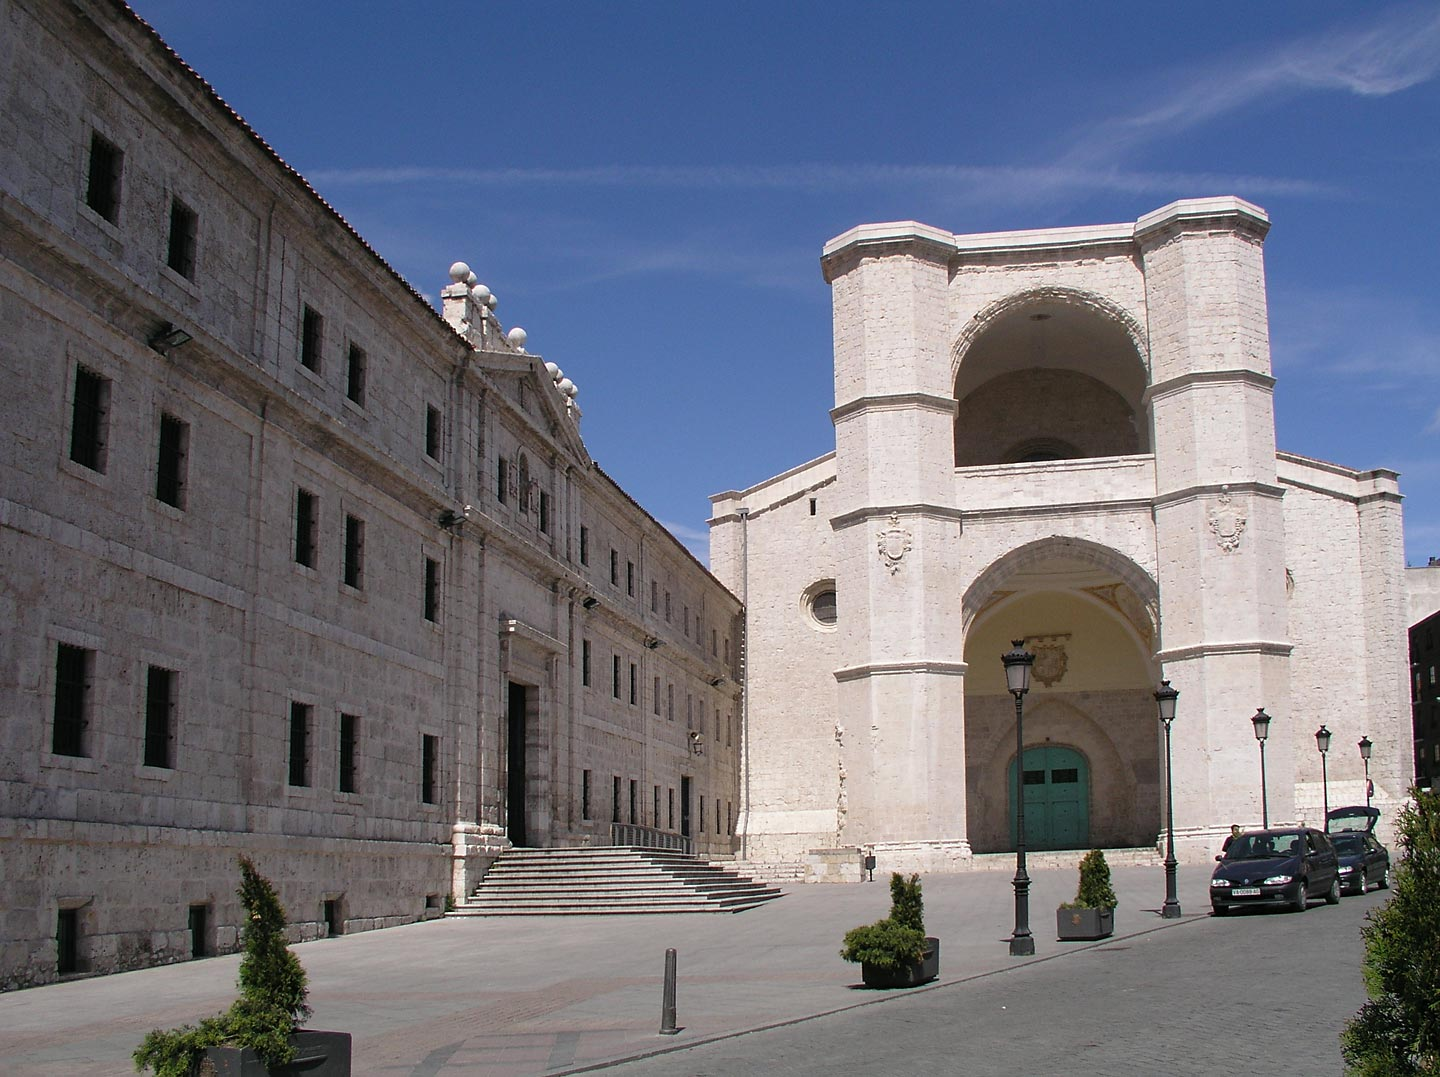 http://upload.wikimedia.org/wikipedia/commons/0/0b/San-Benito-Valladolid.jpg